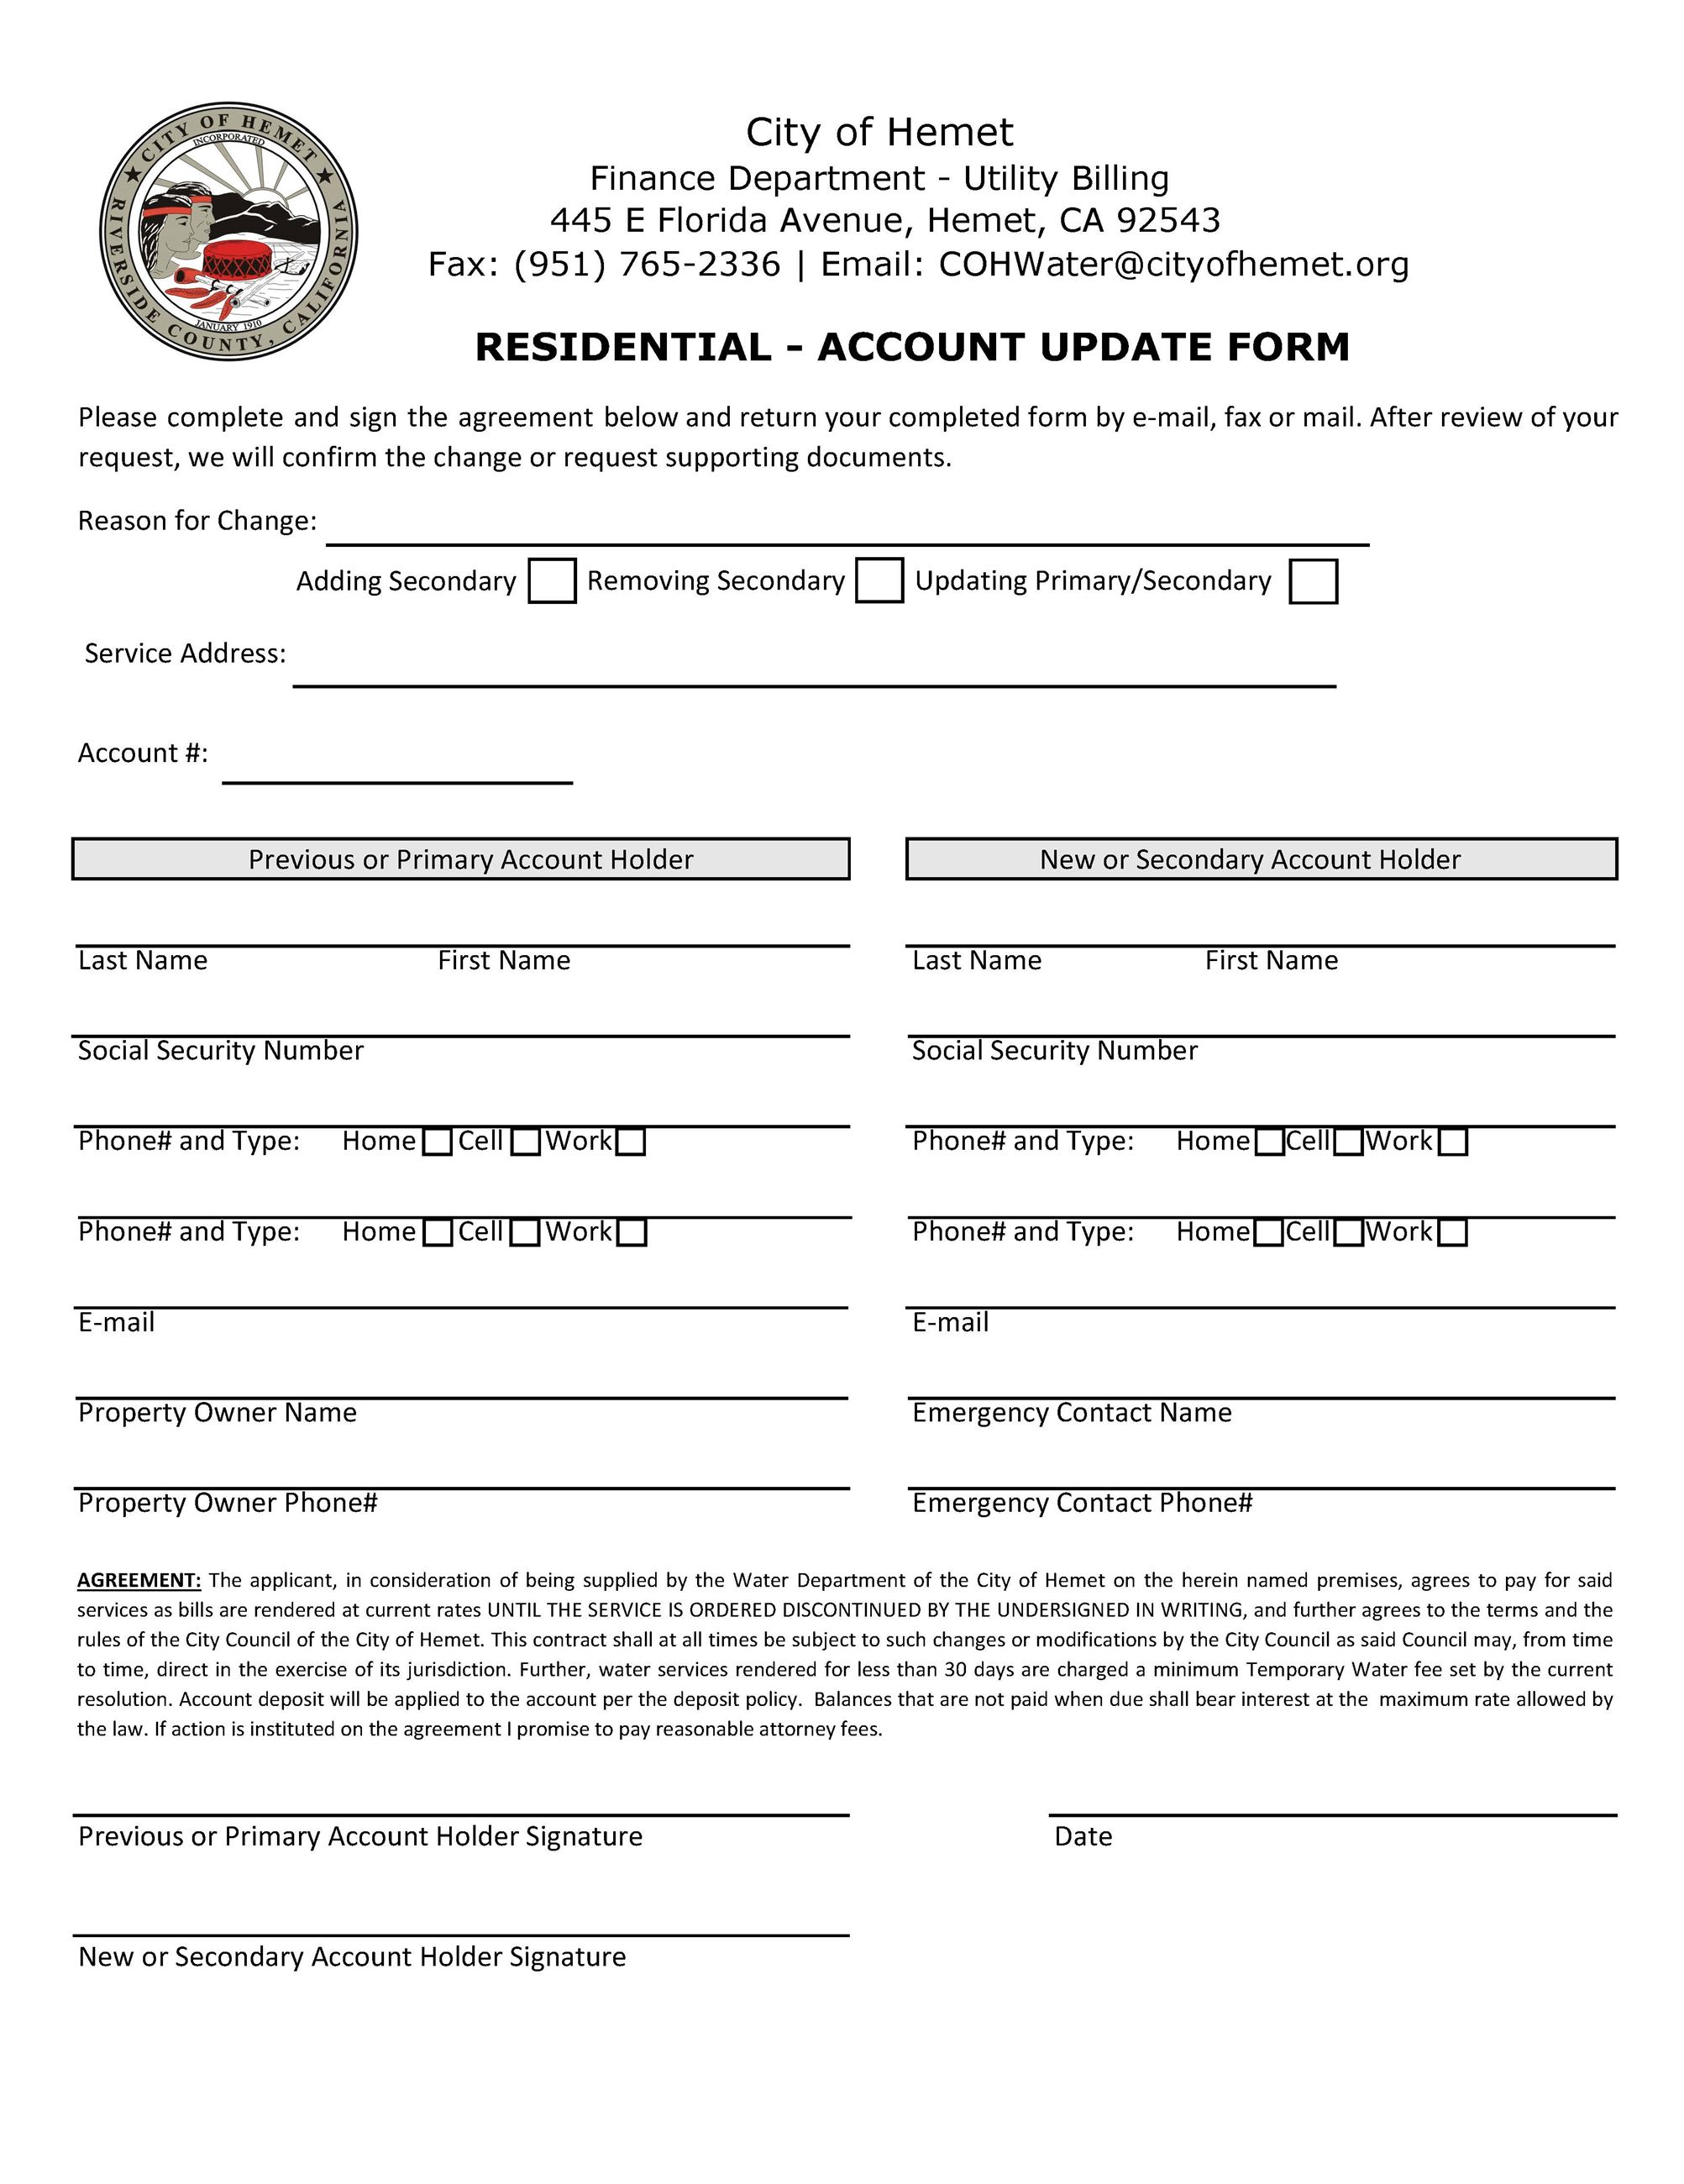 RES. ACCT UPDATE FORM_3-9-2021